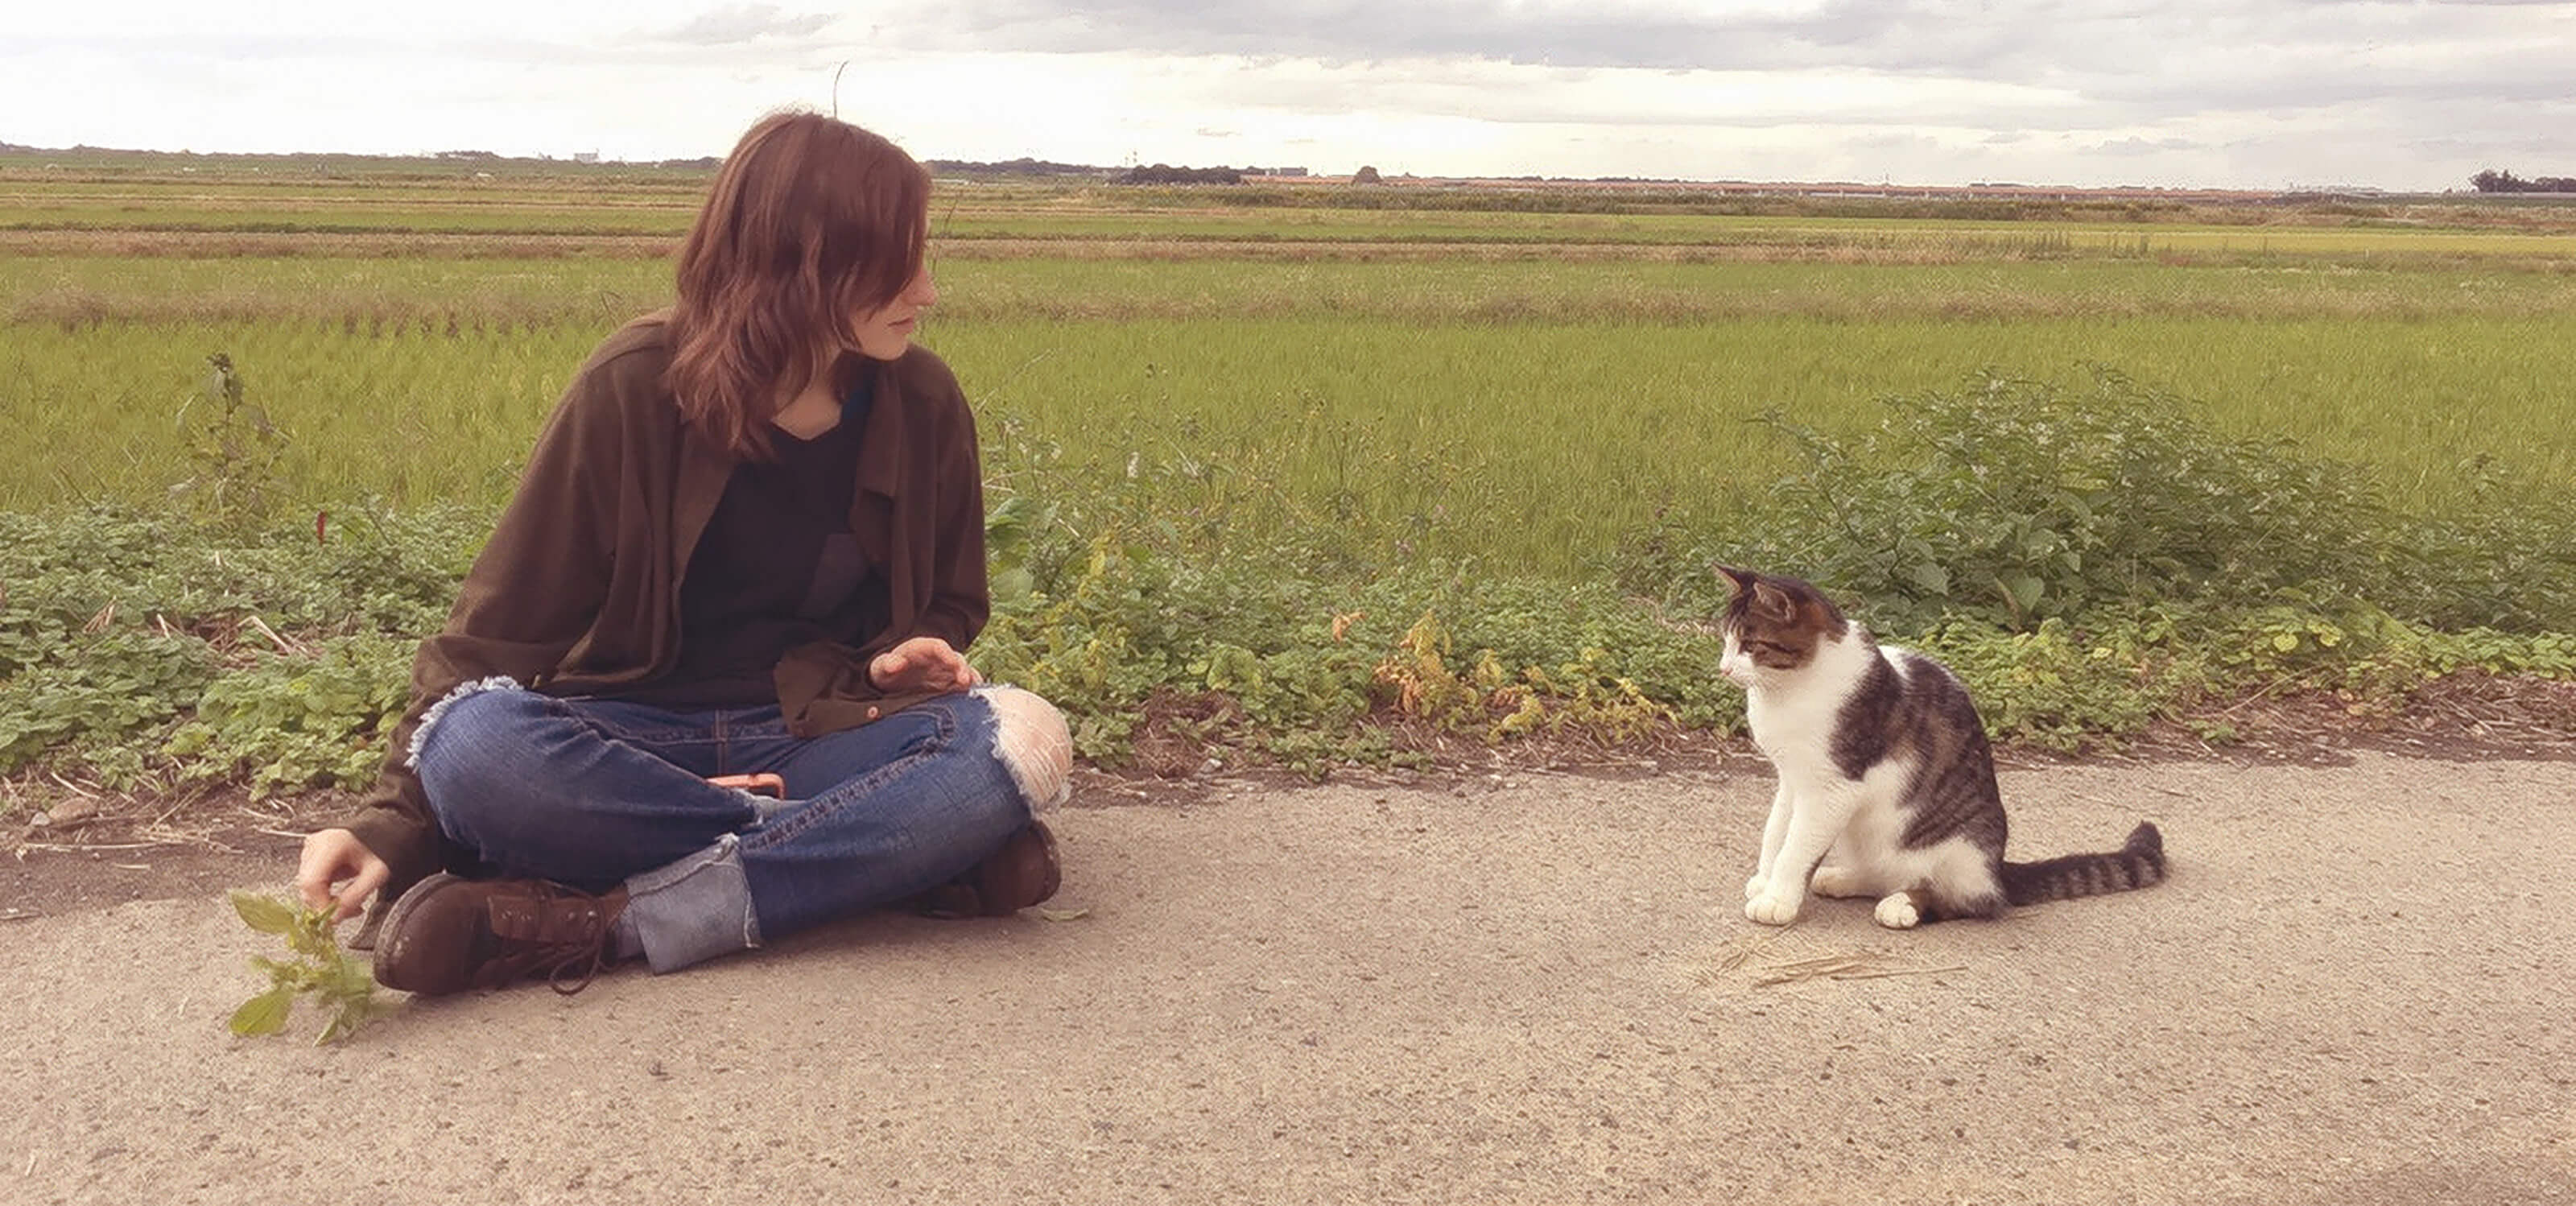 DigiPen alumna Heather Gross sitting on a dirt road in Japan, trying to coax a cat to come over to her